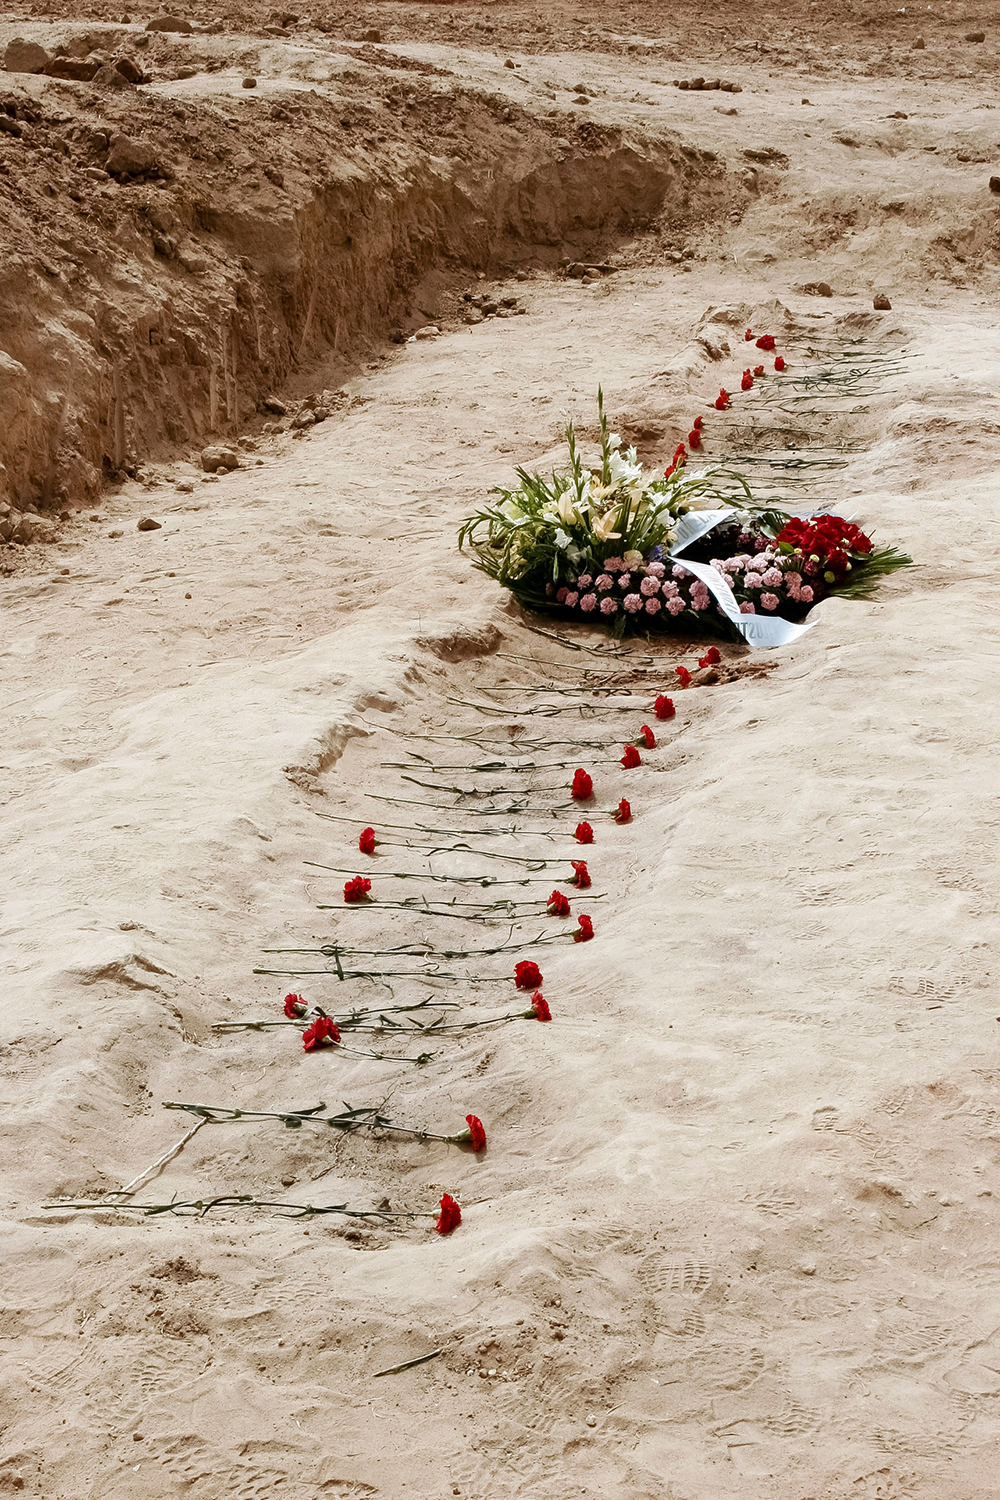 Flowers in the trench.